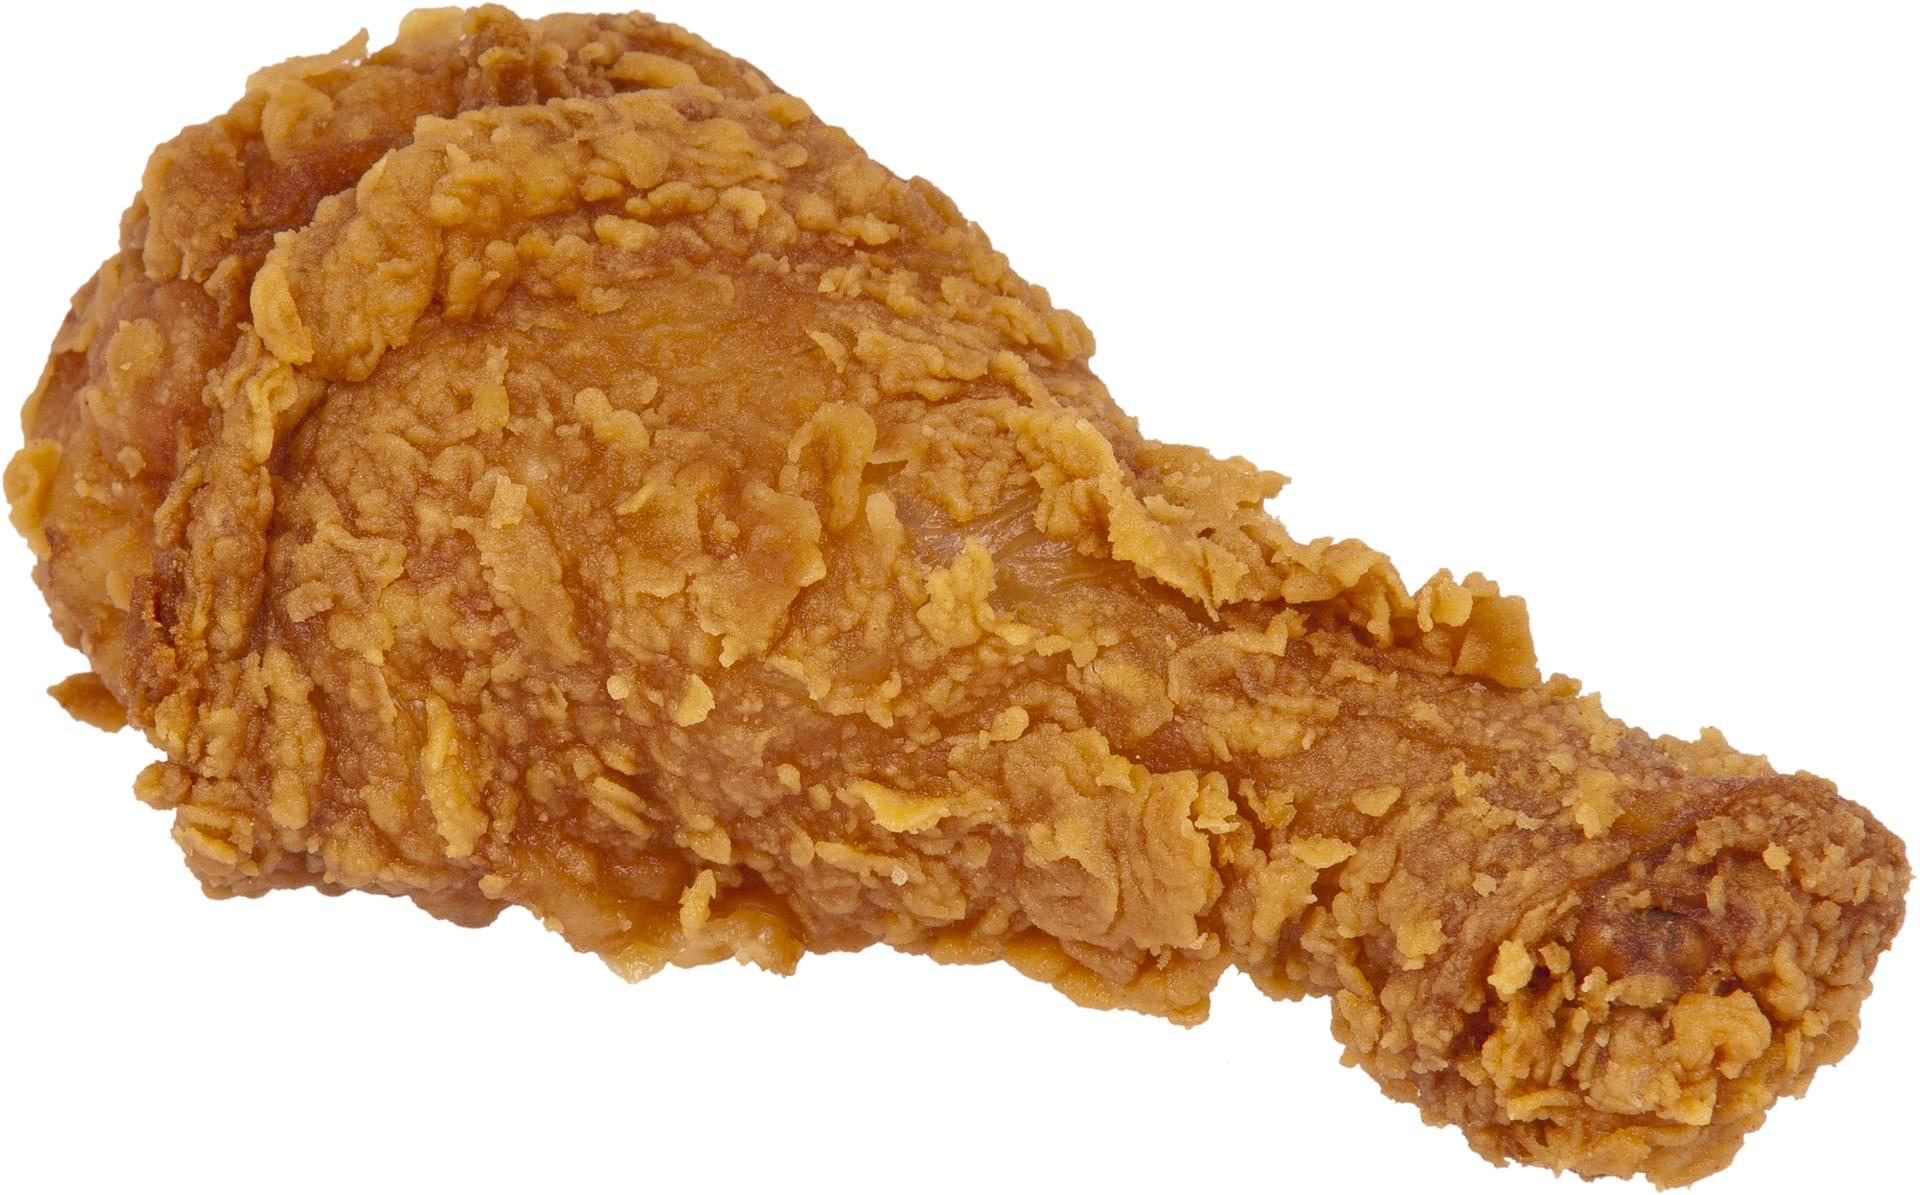 KFC Just Made Chicken-Scented Crocs with Drumsticks on Top